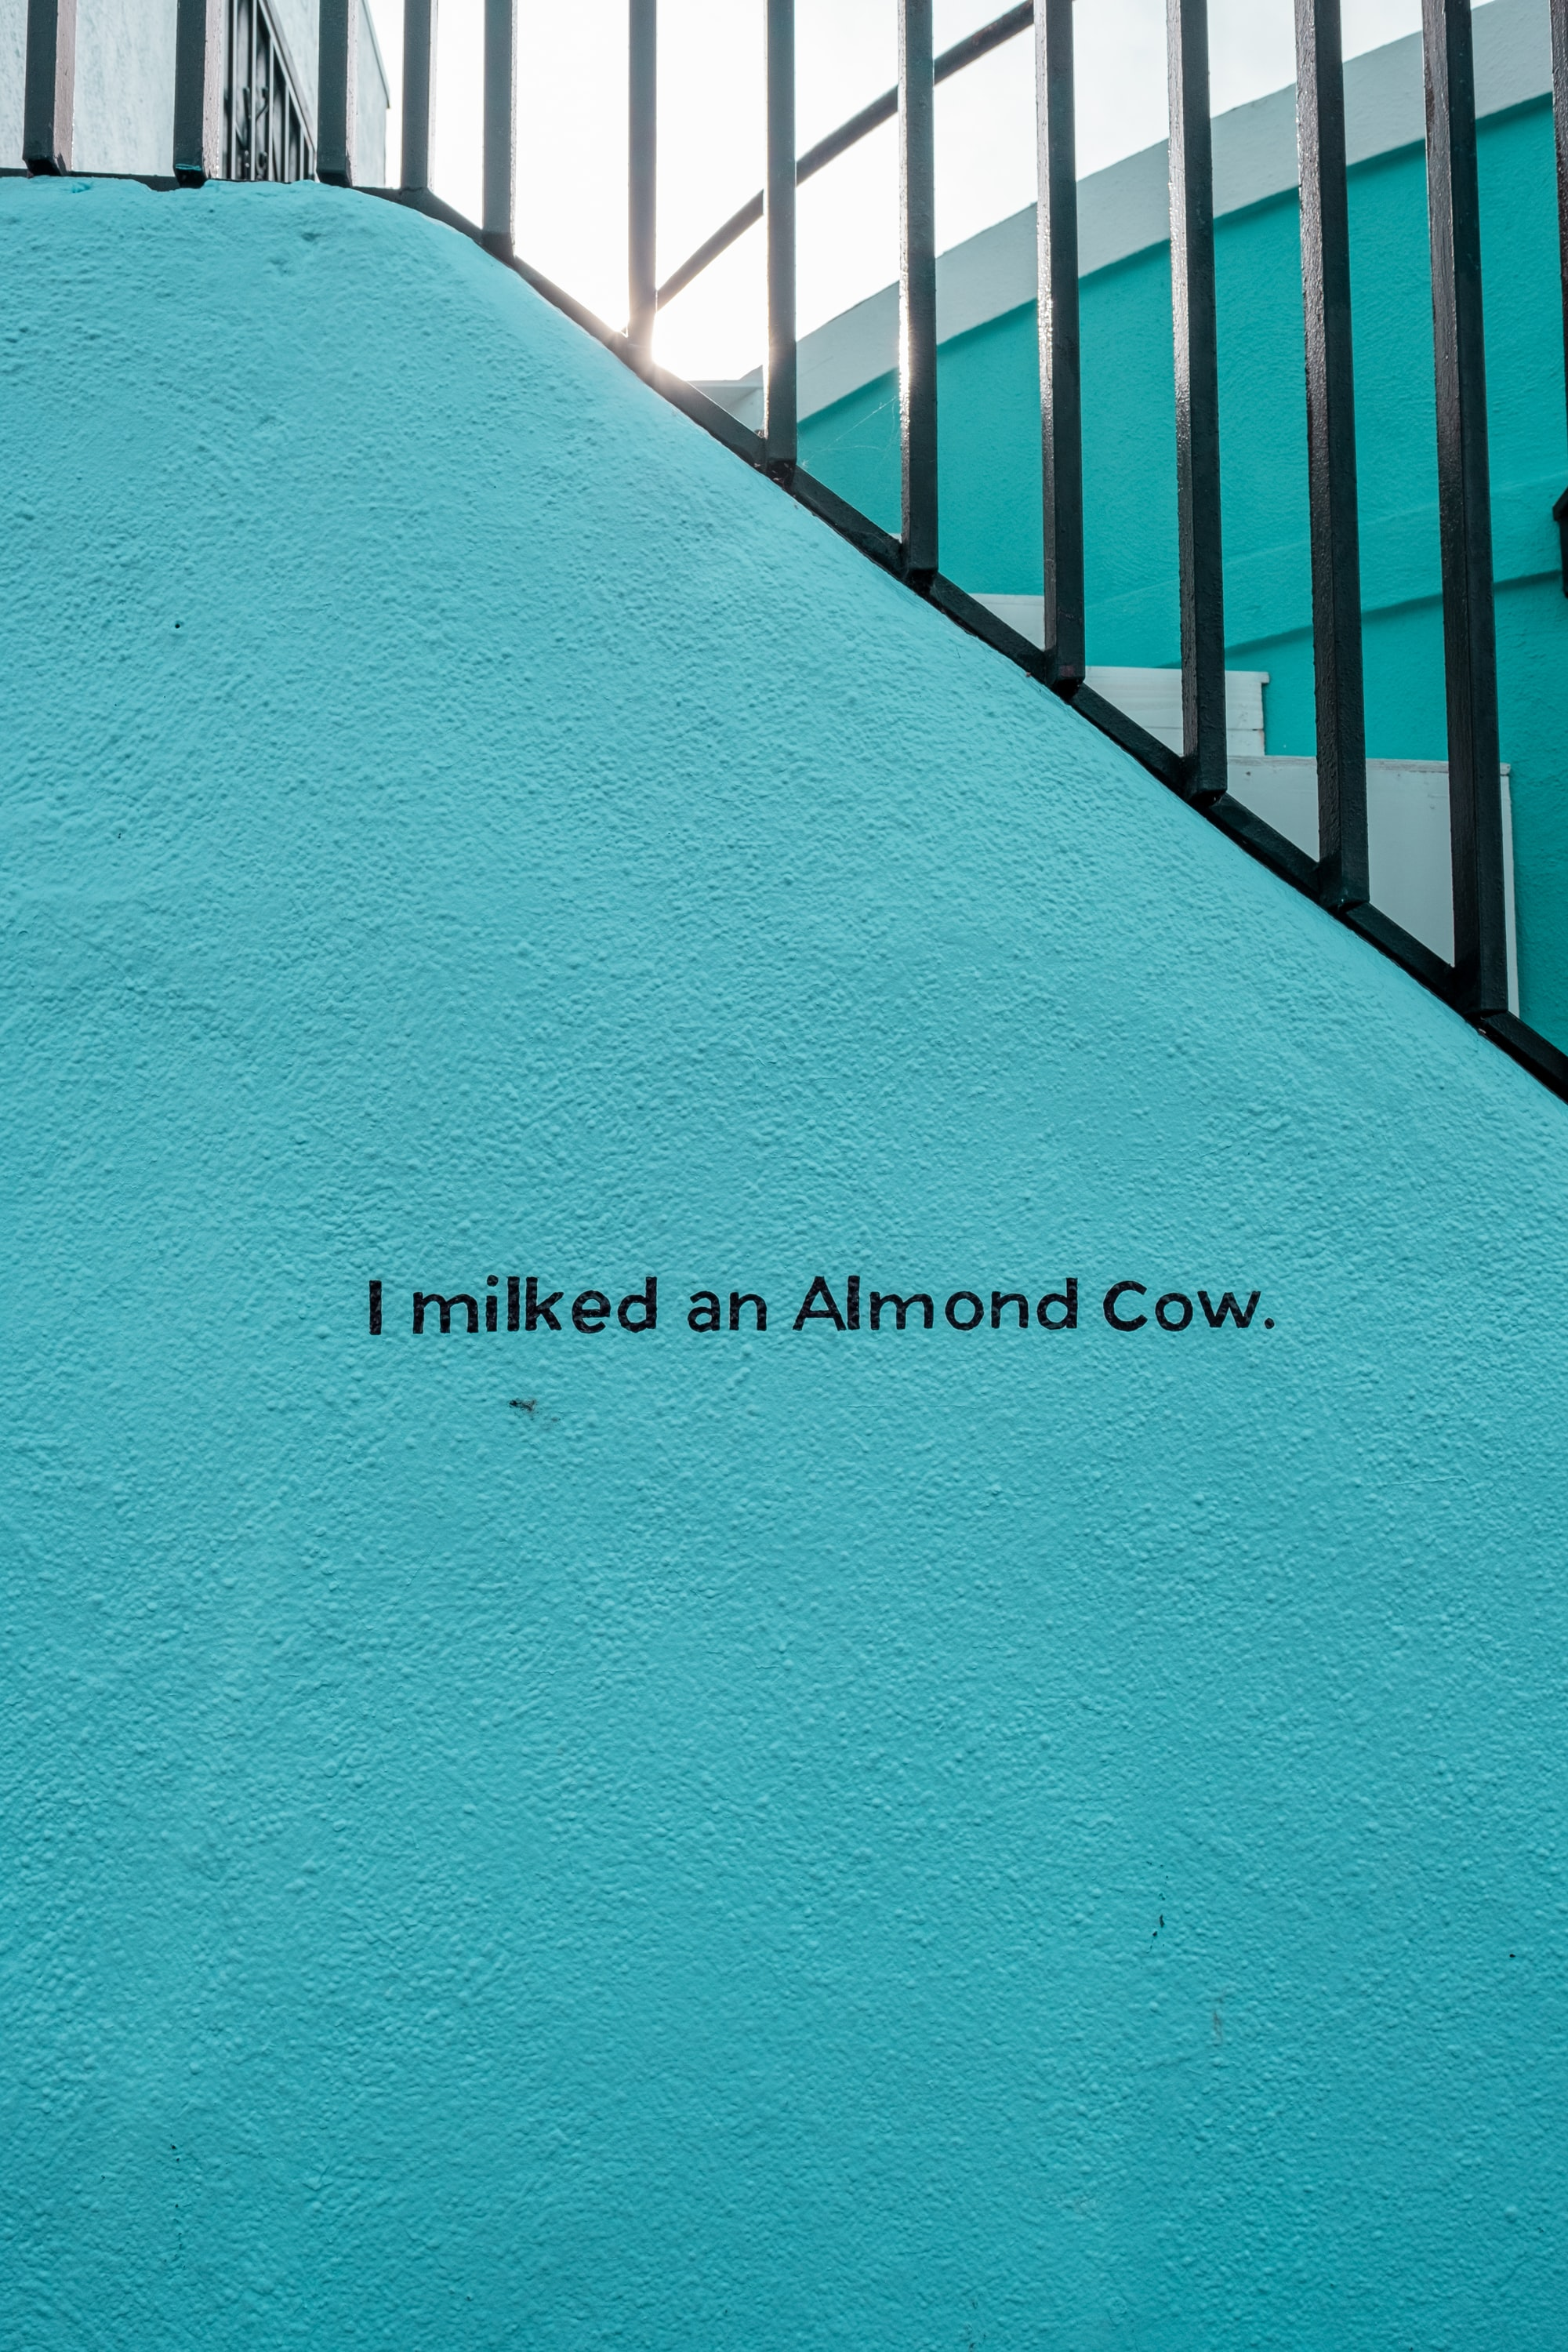 """I milked an almond cow"" on the side Almond Cow plant-based milk shop in Venice, CA."